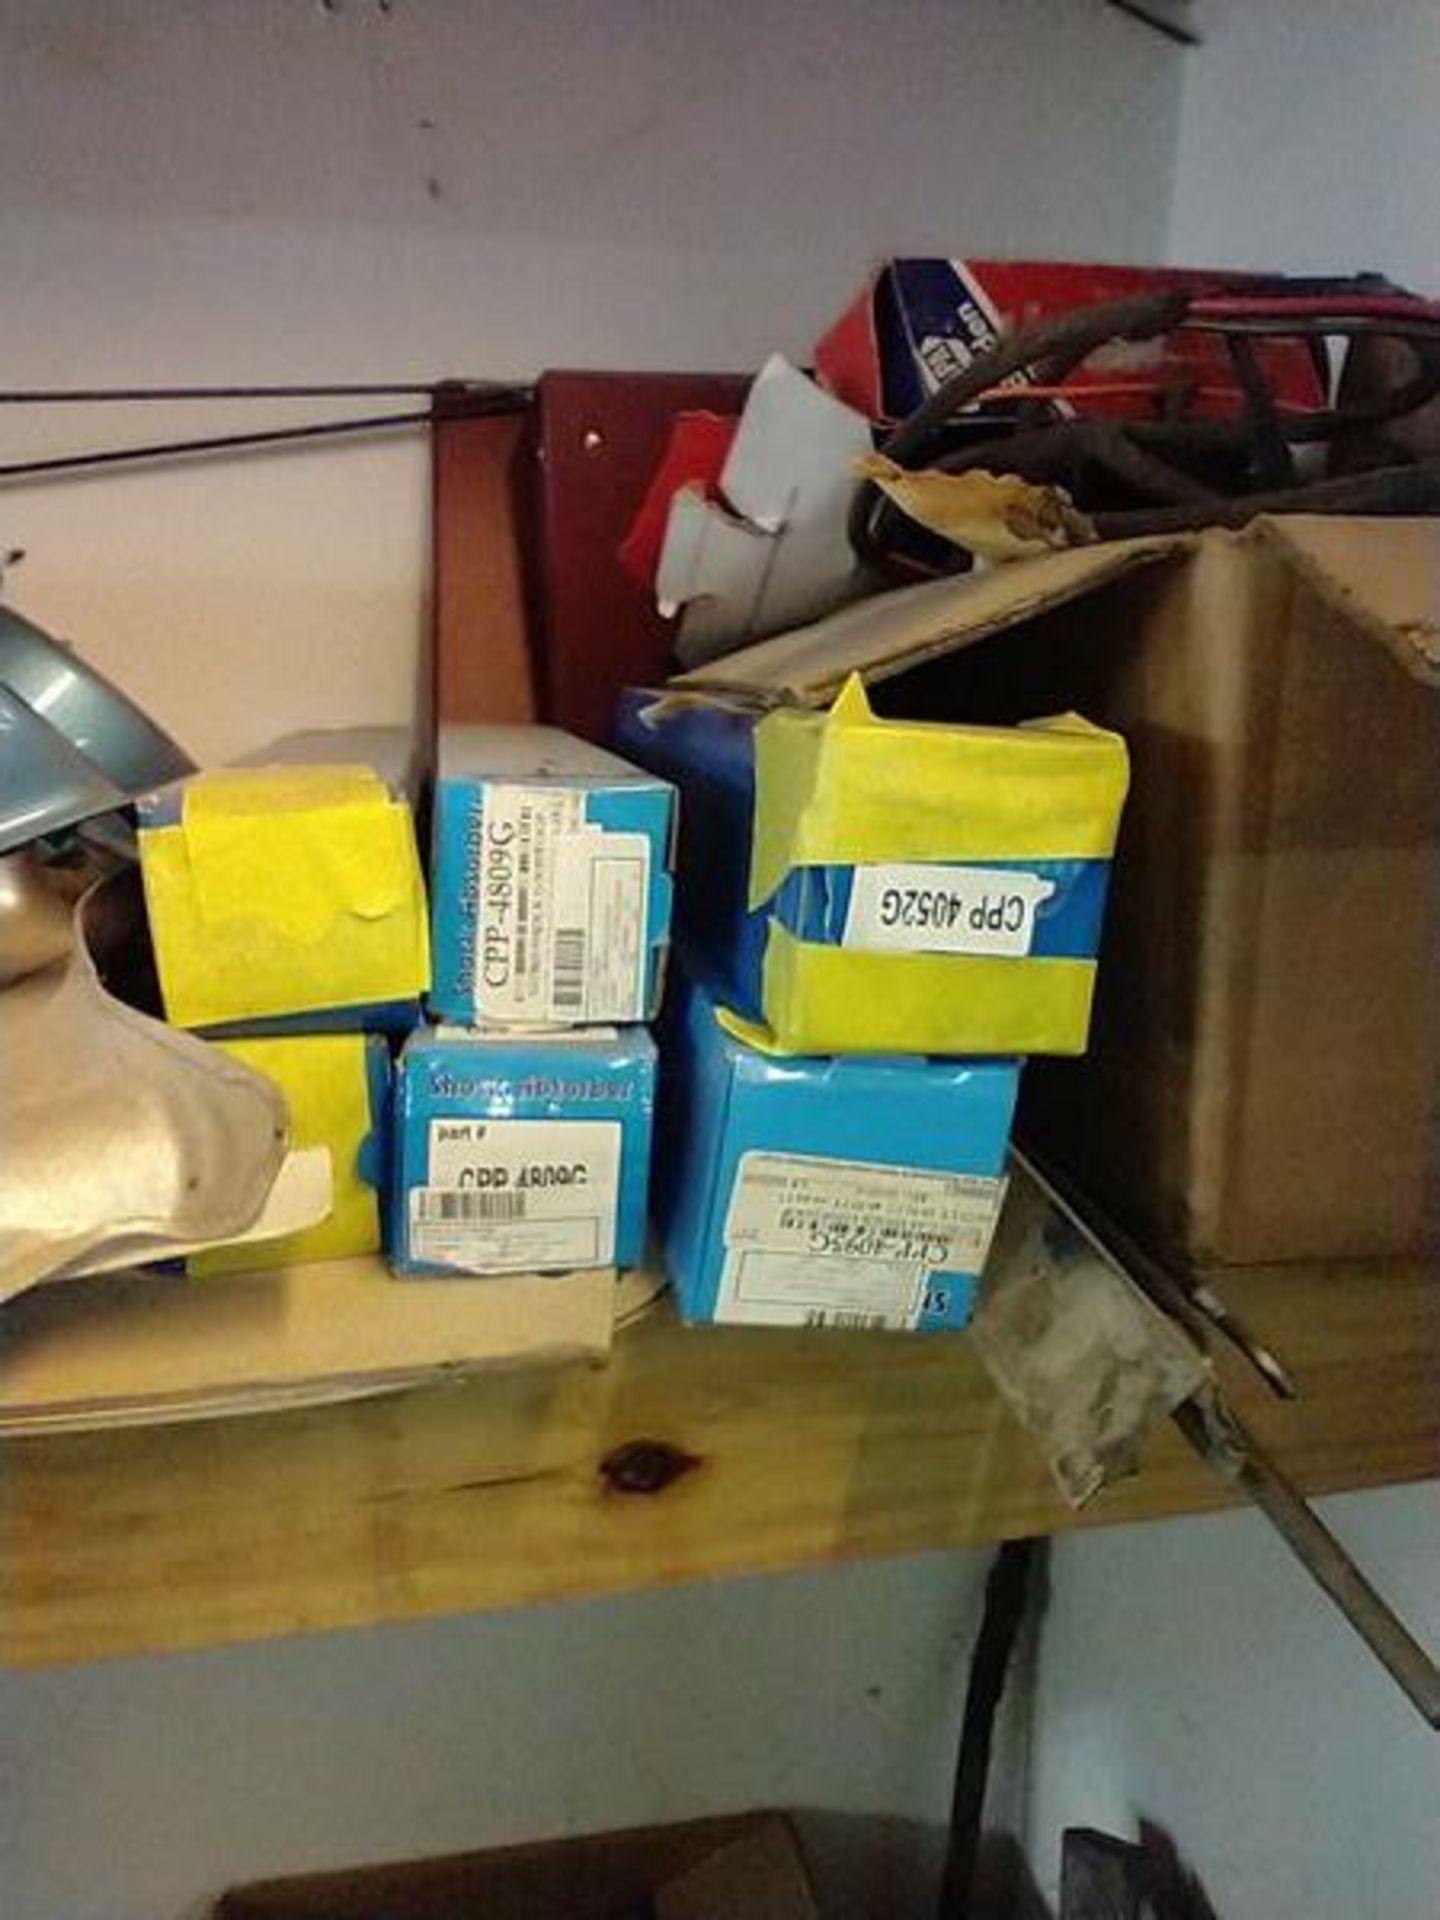 LOT OF ASSORTED CAR PARTS ON 2 SHELVES AND FLOOR - Image 12 of 23